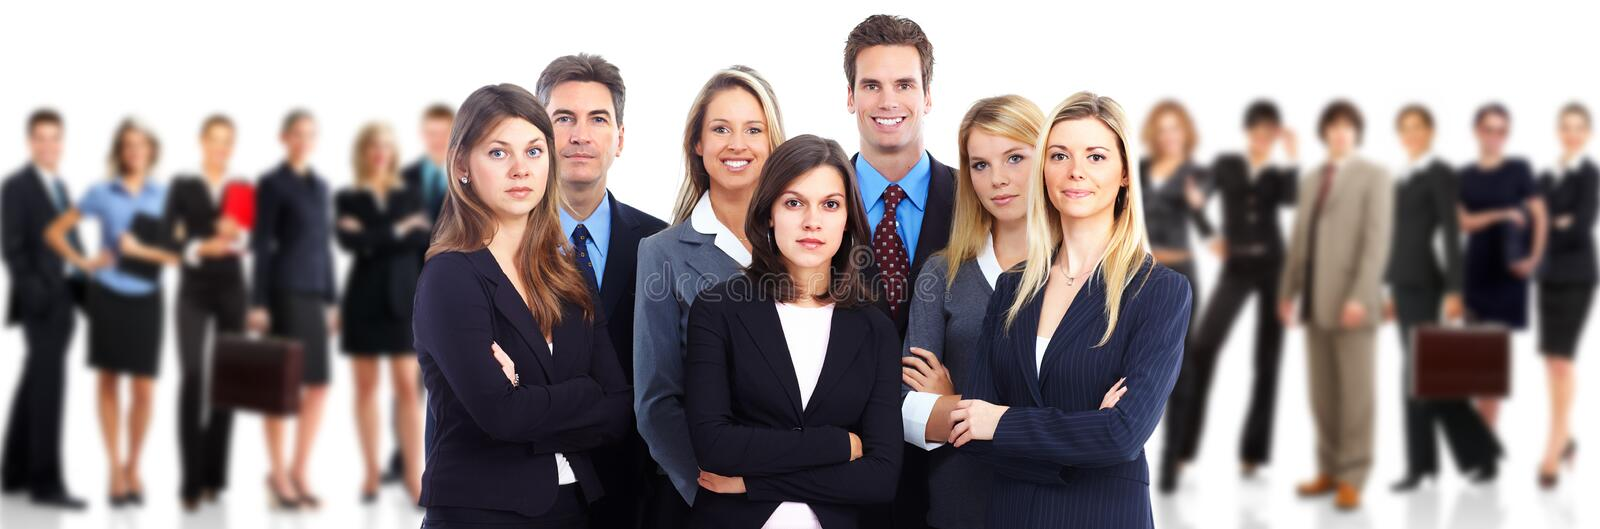 Business team. Group of business people over white background royalty free stock images